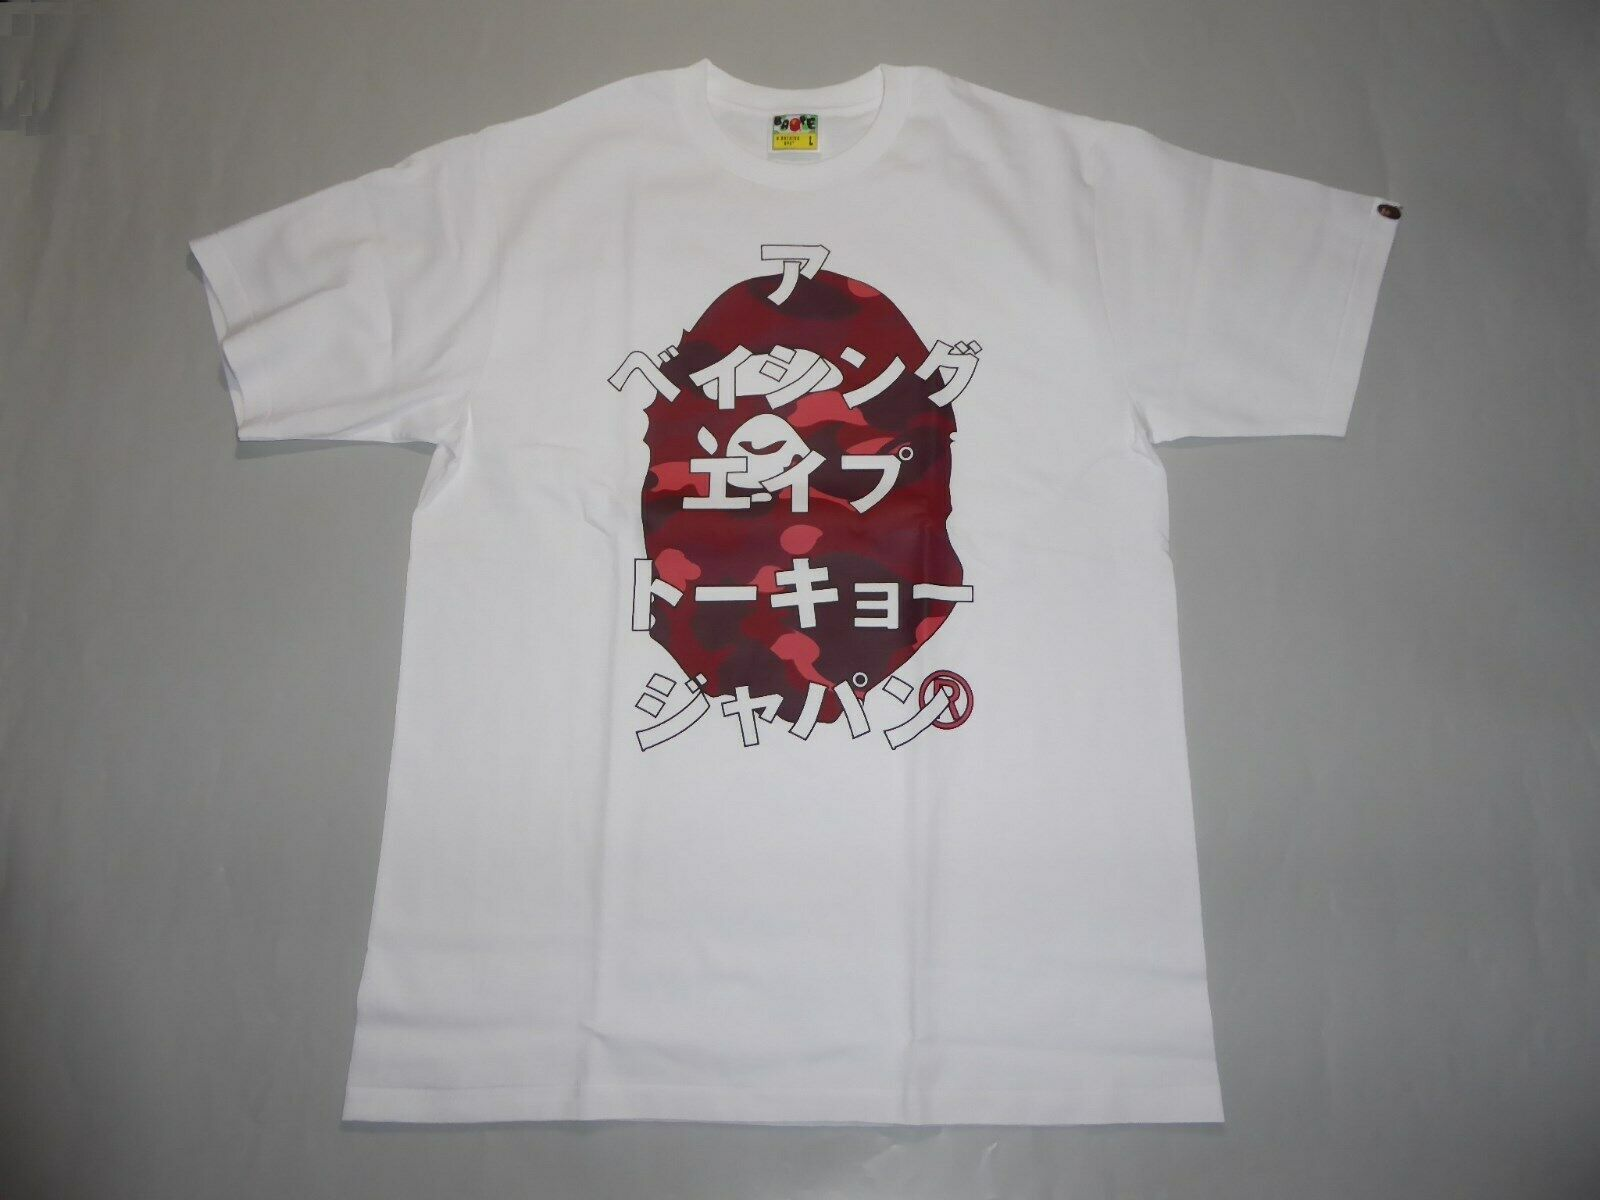 19887 bape color camo bape katakana white red tee L